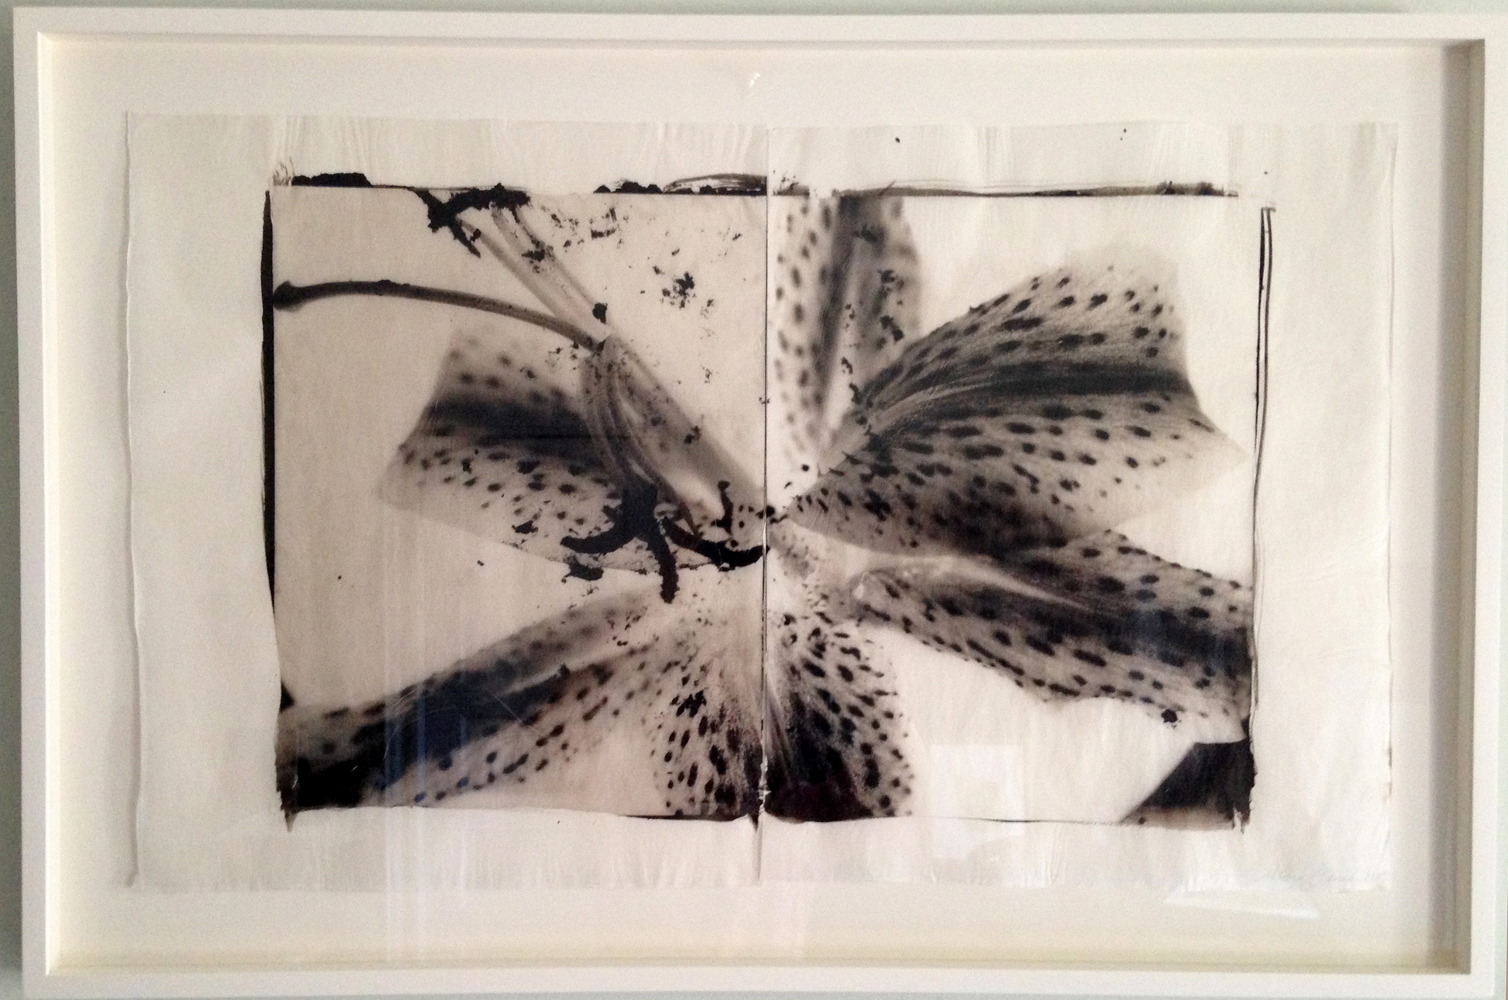 A diptych of a lily, framed and ready for sale.